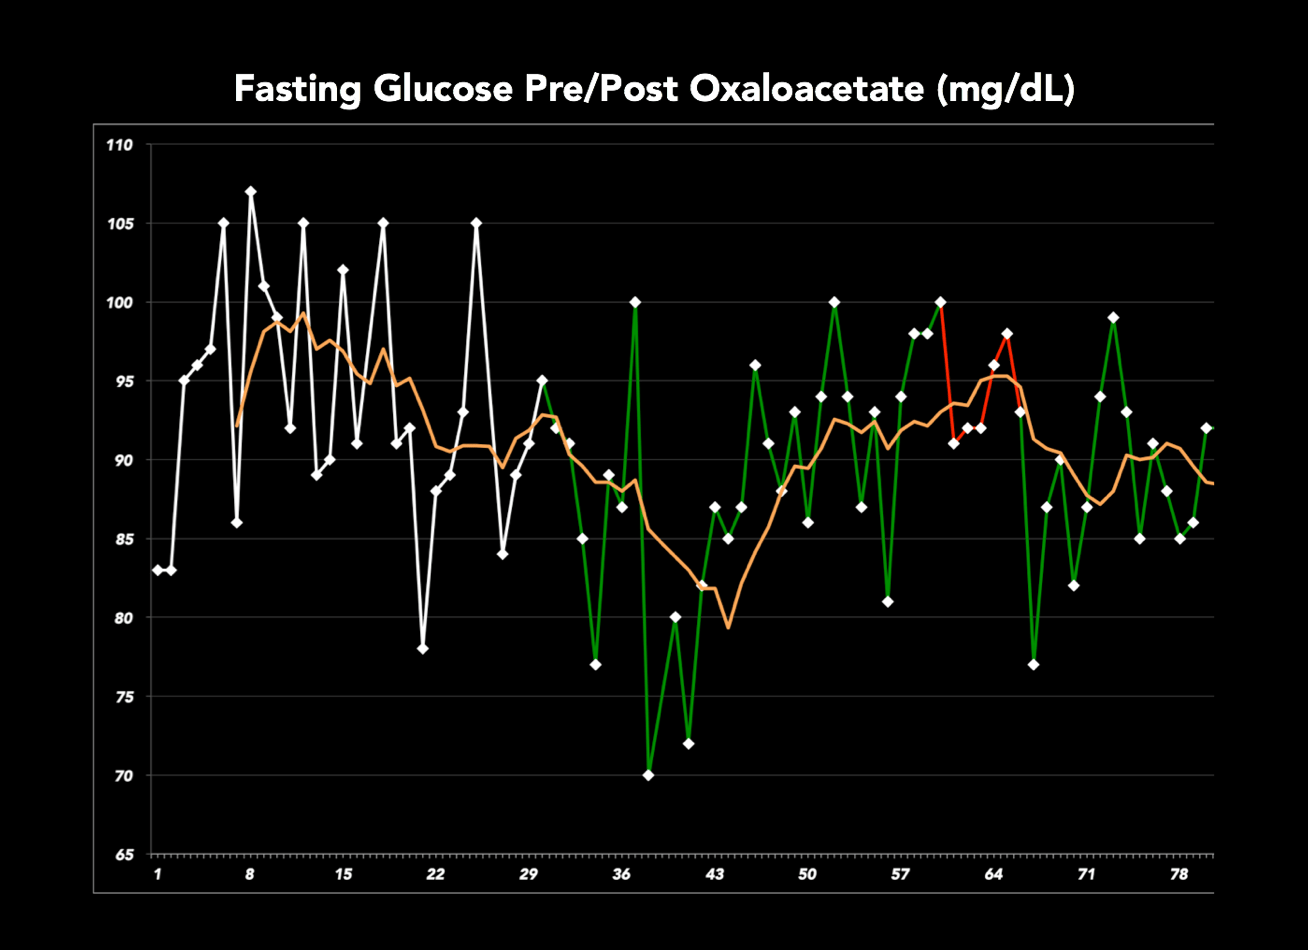 Fasting Glucose Post 30 Days Oxaloacetate